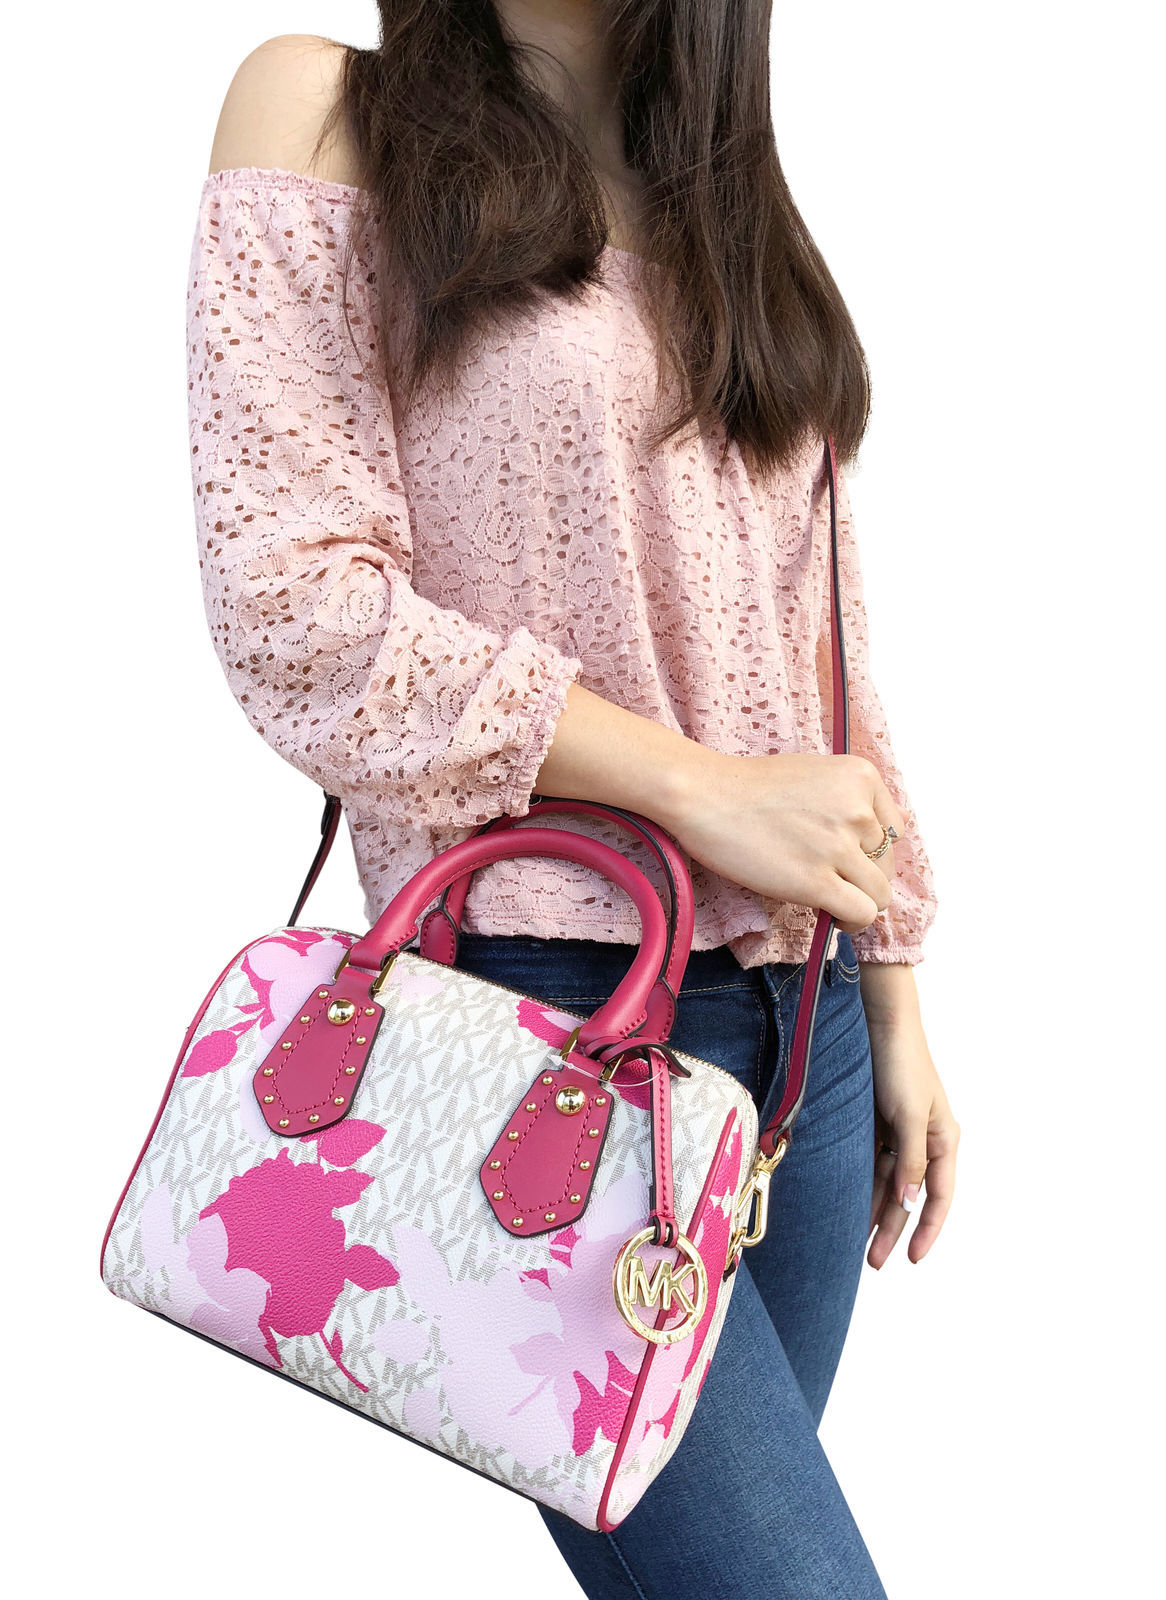 798d28e72318 S l1600. S l1600. Previous. NWT Michael Kors Aria Small Top Zip Satchel  Crossbody Vanilla MK Pink Floral